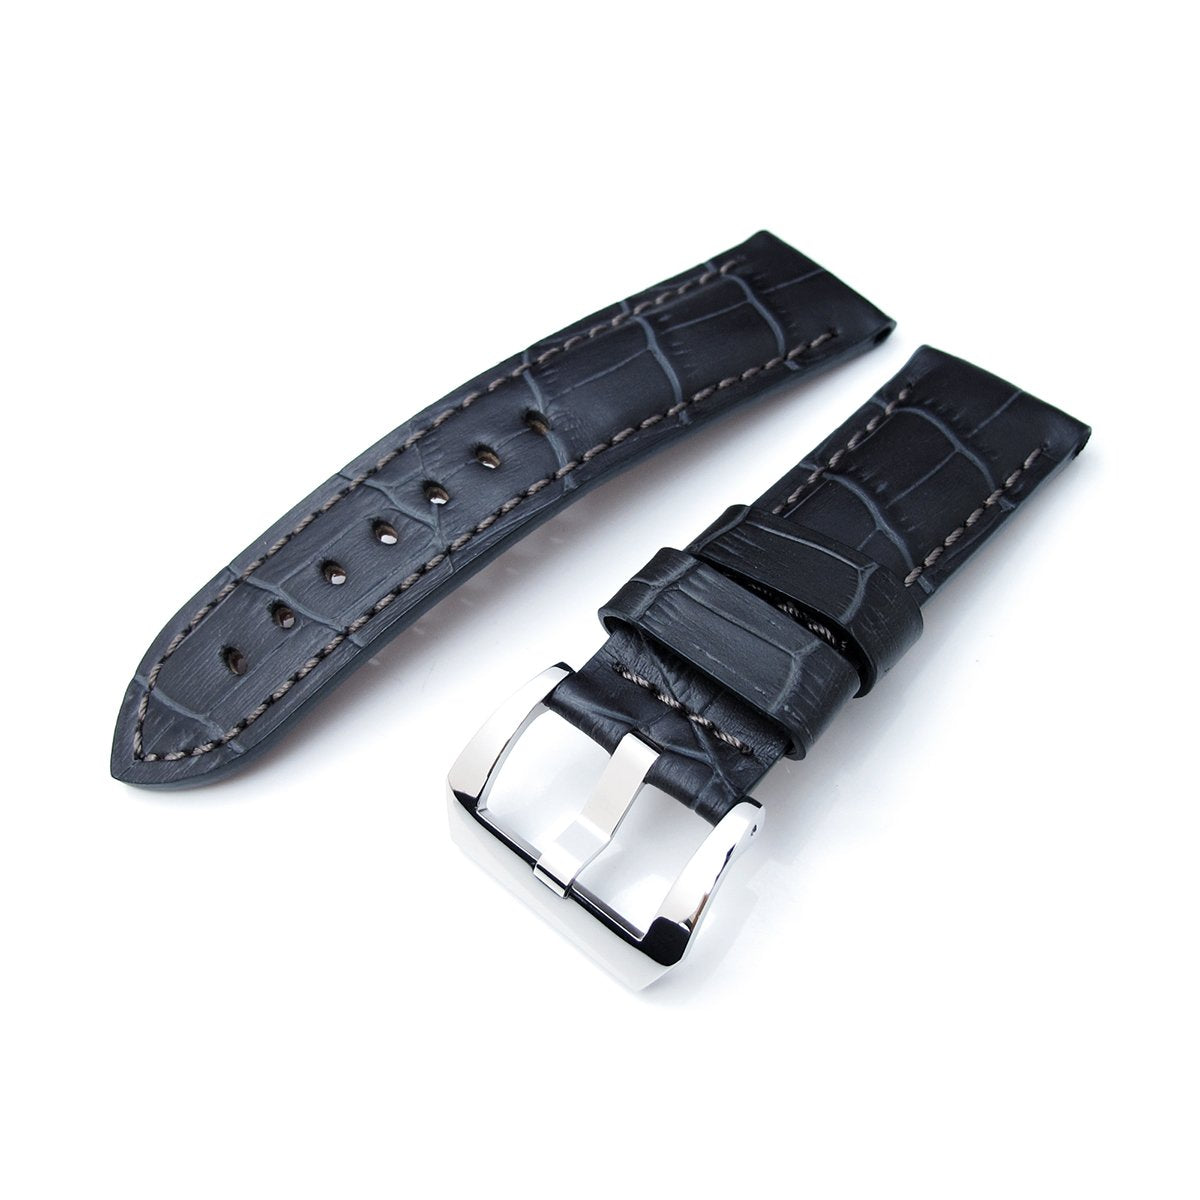 24mm CrocoCalf (Croco Grain) Matte Grey Watch Band Polished Screw-in Buckle Strapcode Watch Bands